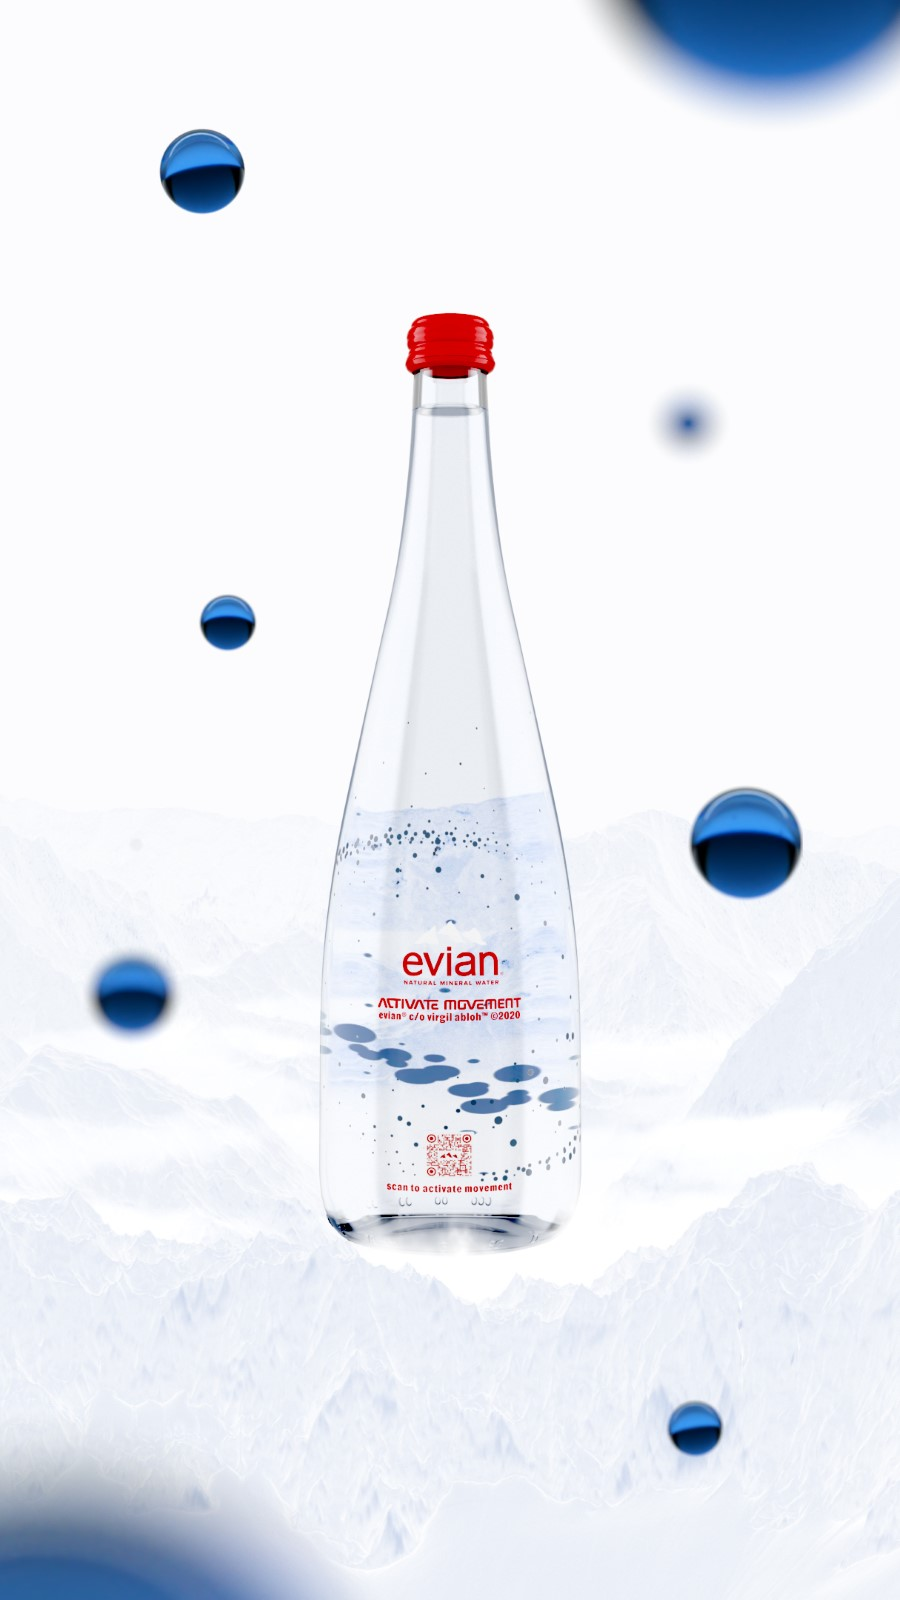 evian x Virgil Abloh - Activate Movement